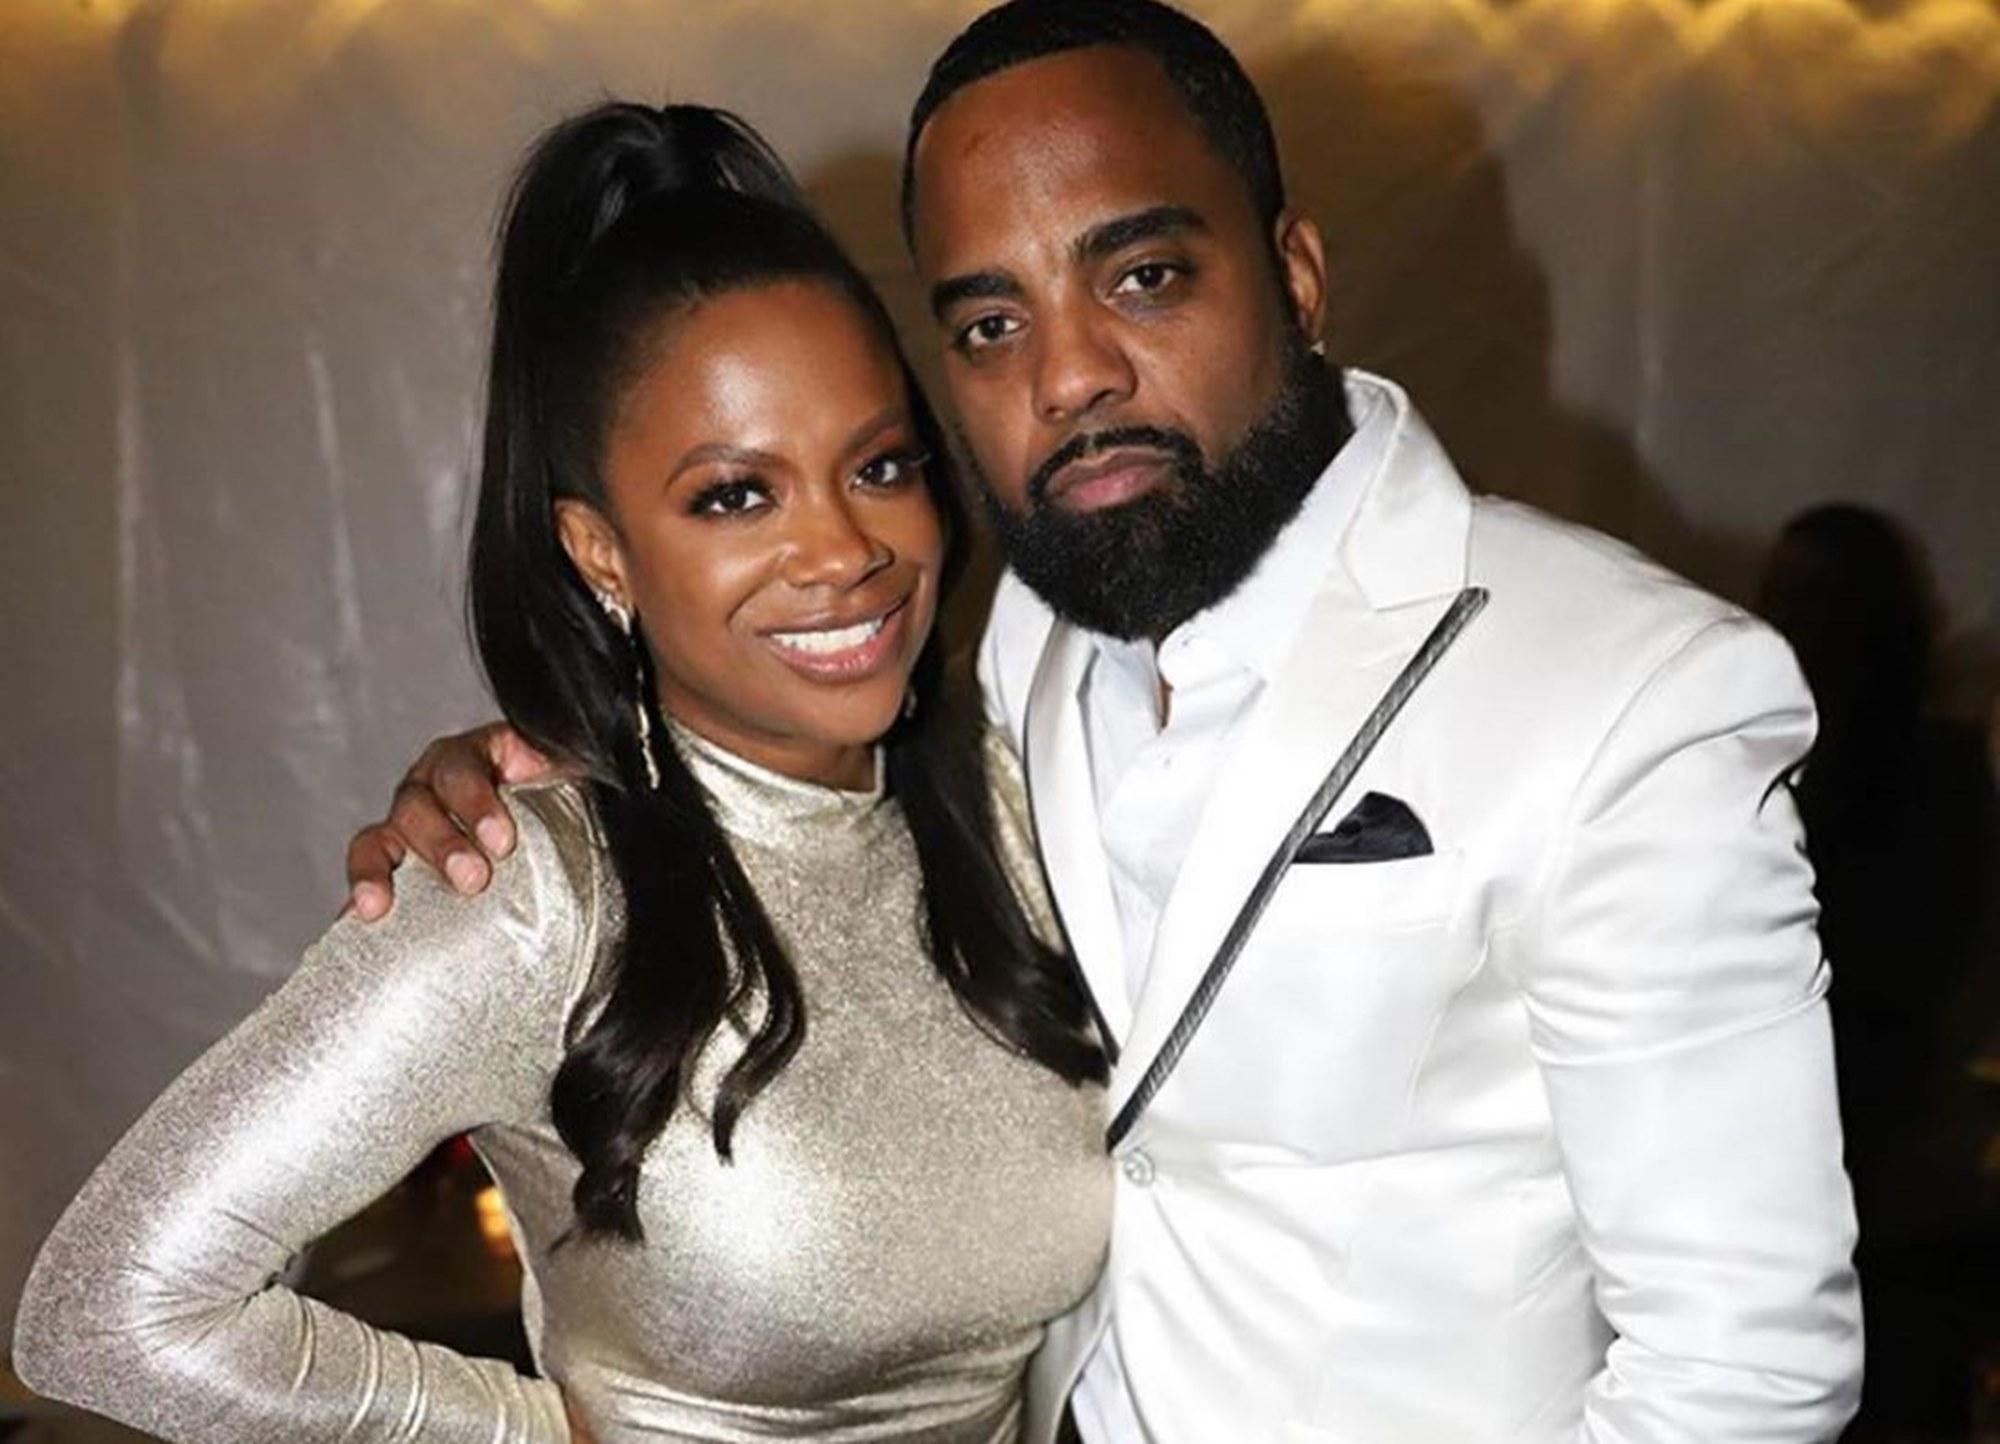 """kandi-burruss-shares-a-scandalous-photo-with-todd-tucker-ahead-of-valentines-day-that-has-fans-talking"""